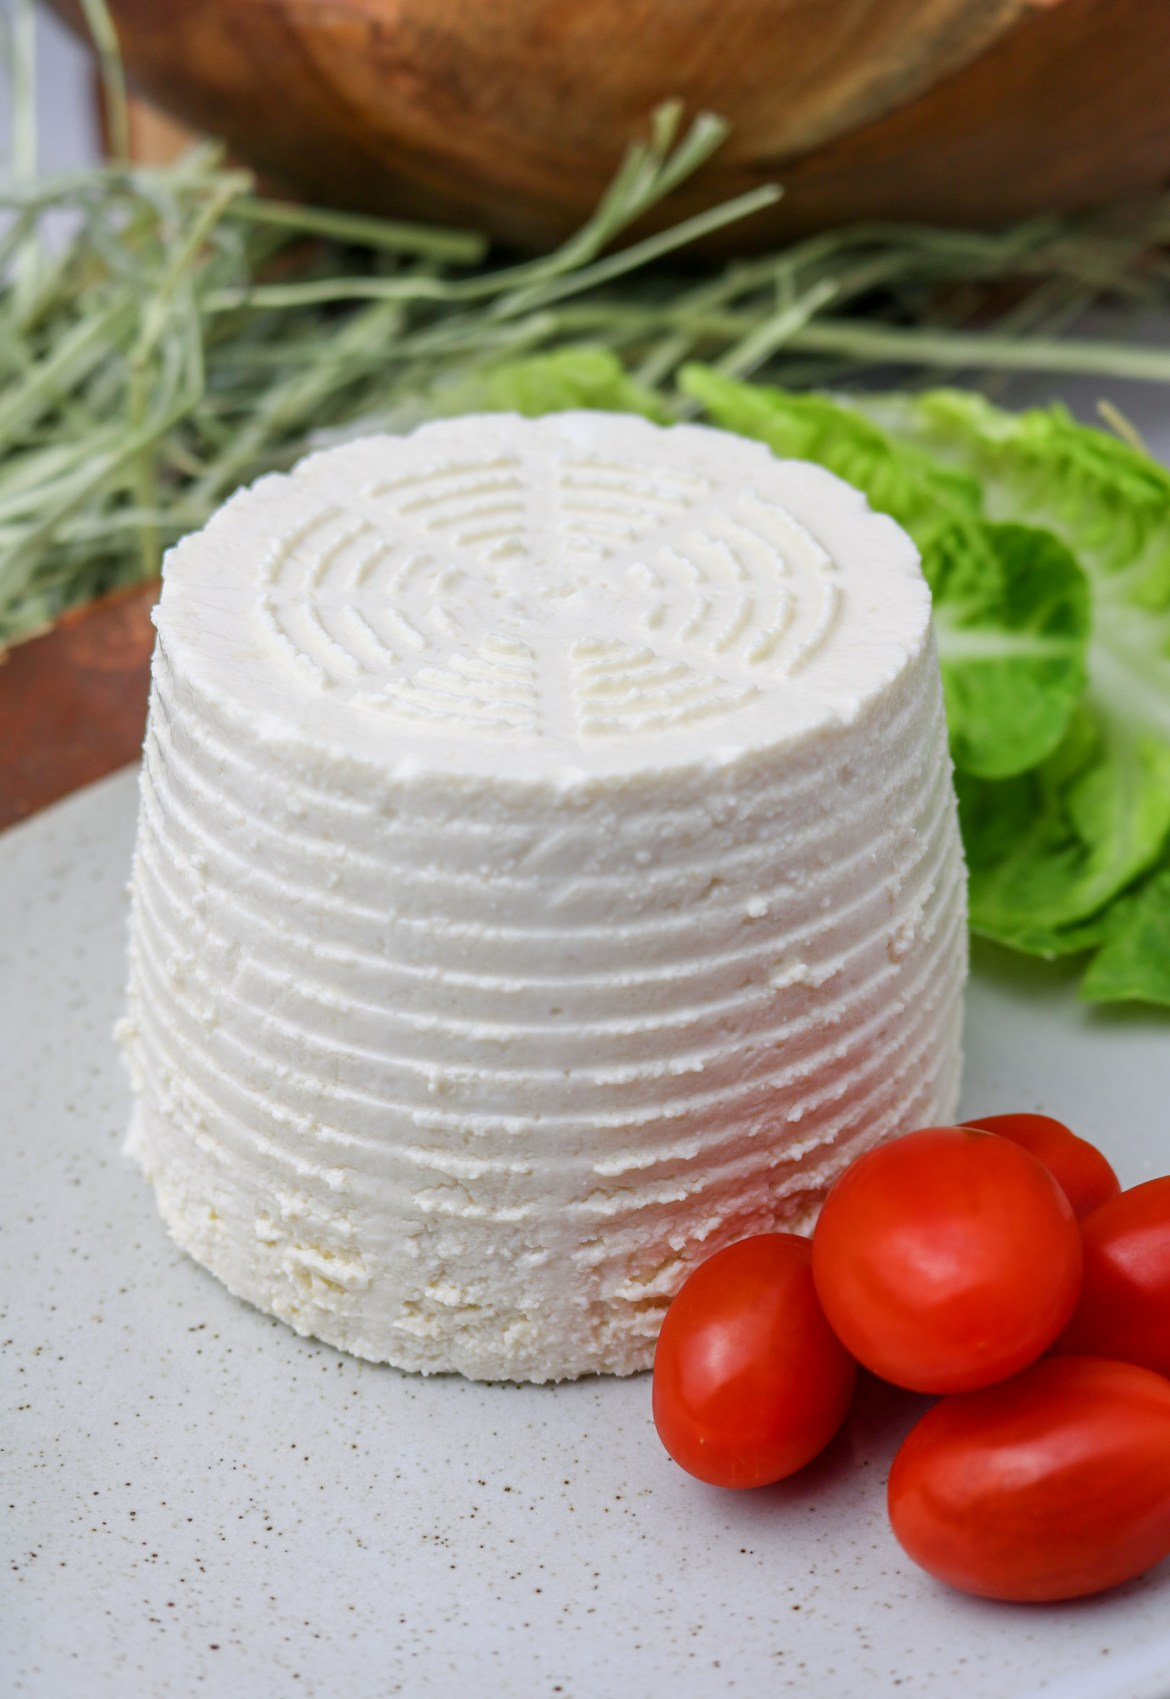 ricotta served on a plate whole with tomatoes and lettuce leaves